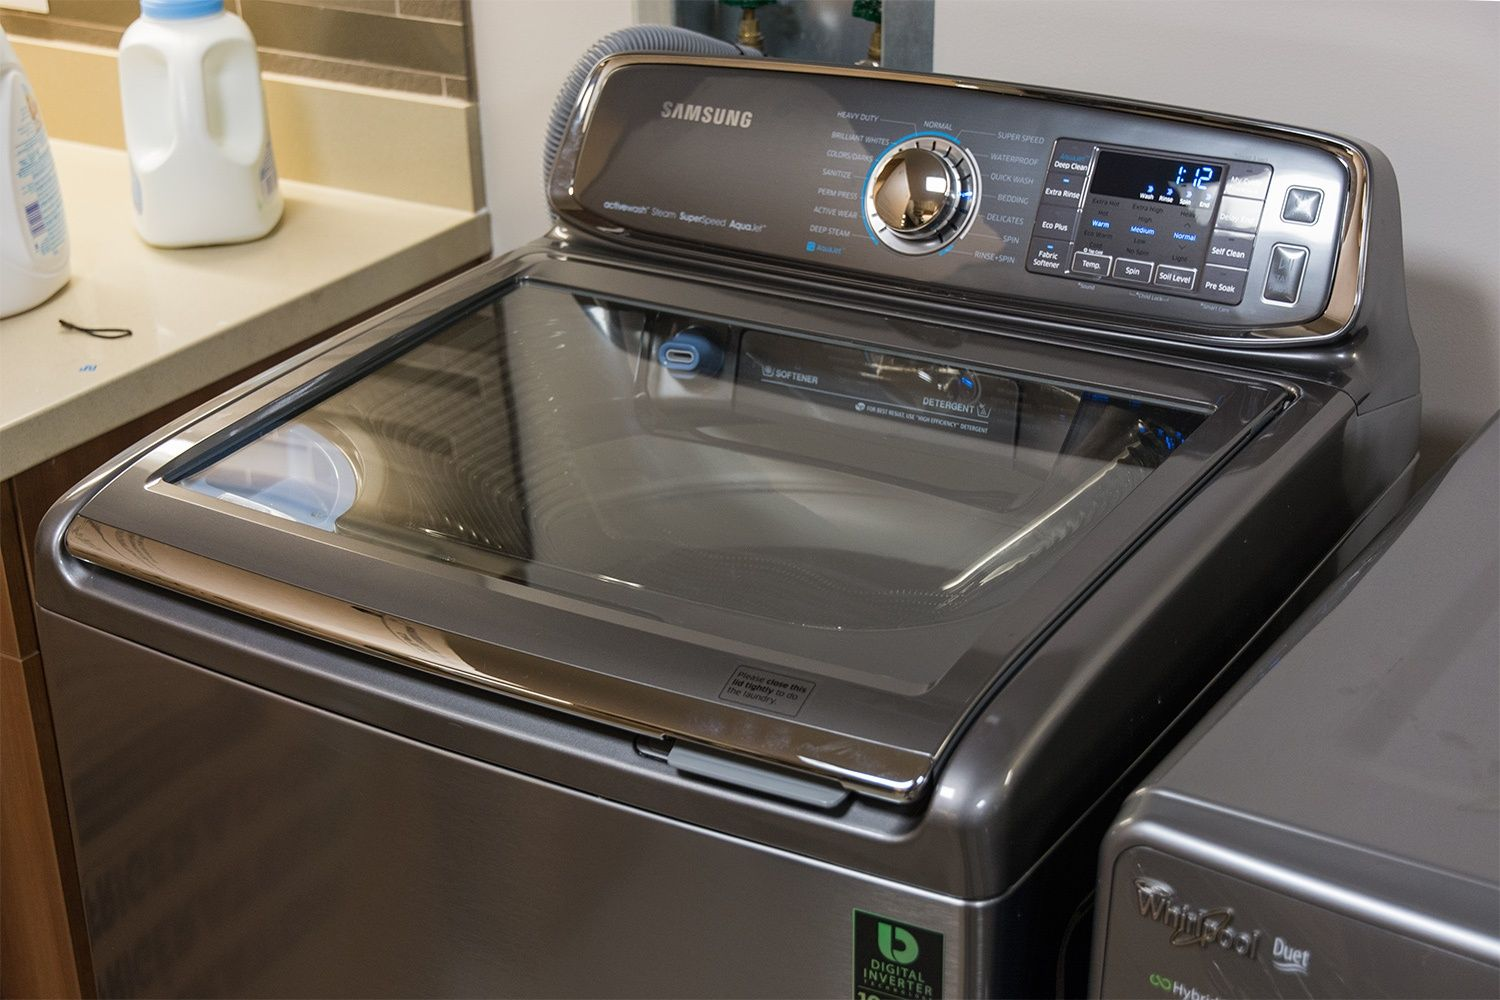 Futuristic Or Old School This Samsung Washer With A Hand Washing Sink Is Both Lavadora Samsung Lavadora Samsung